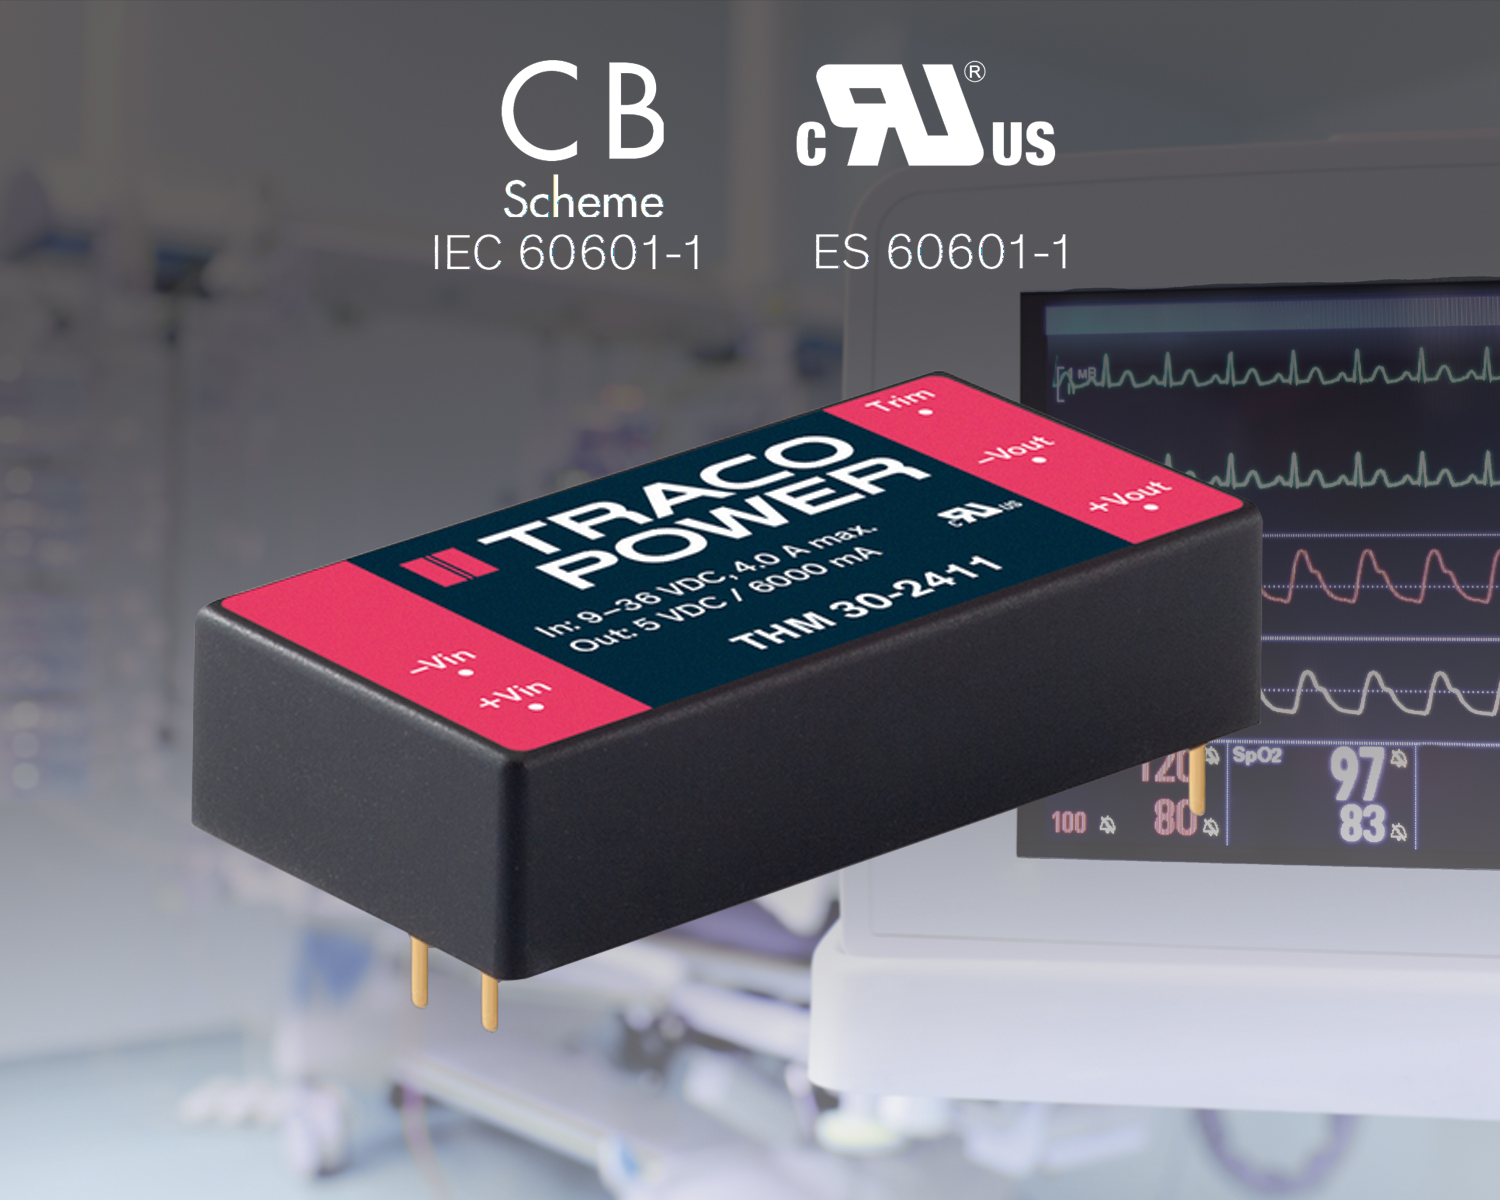 30 Watt Medical DC-DC Converter Features Wide 2:1 Input Range in 1x2'' Footprint